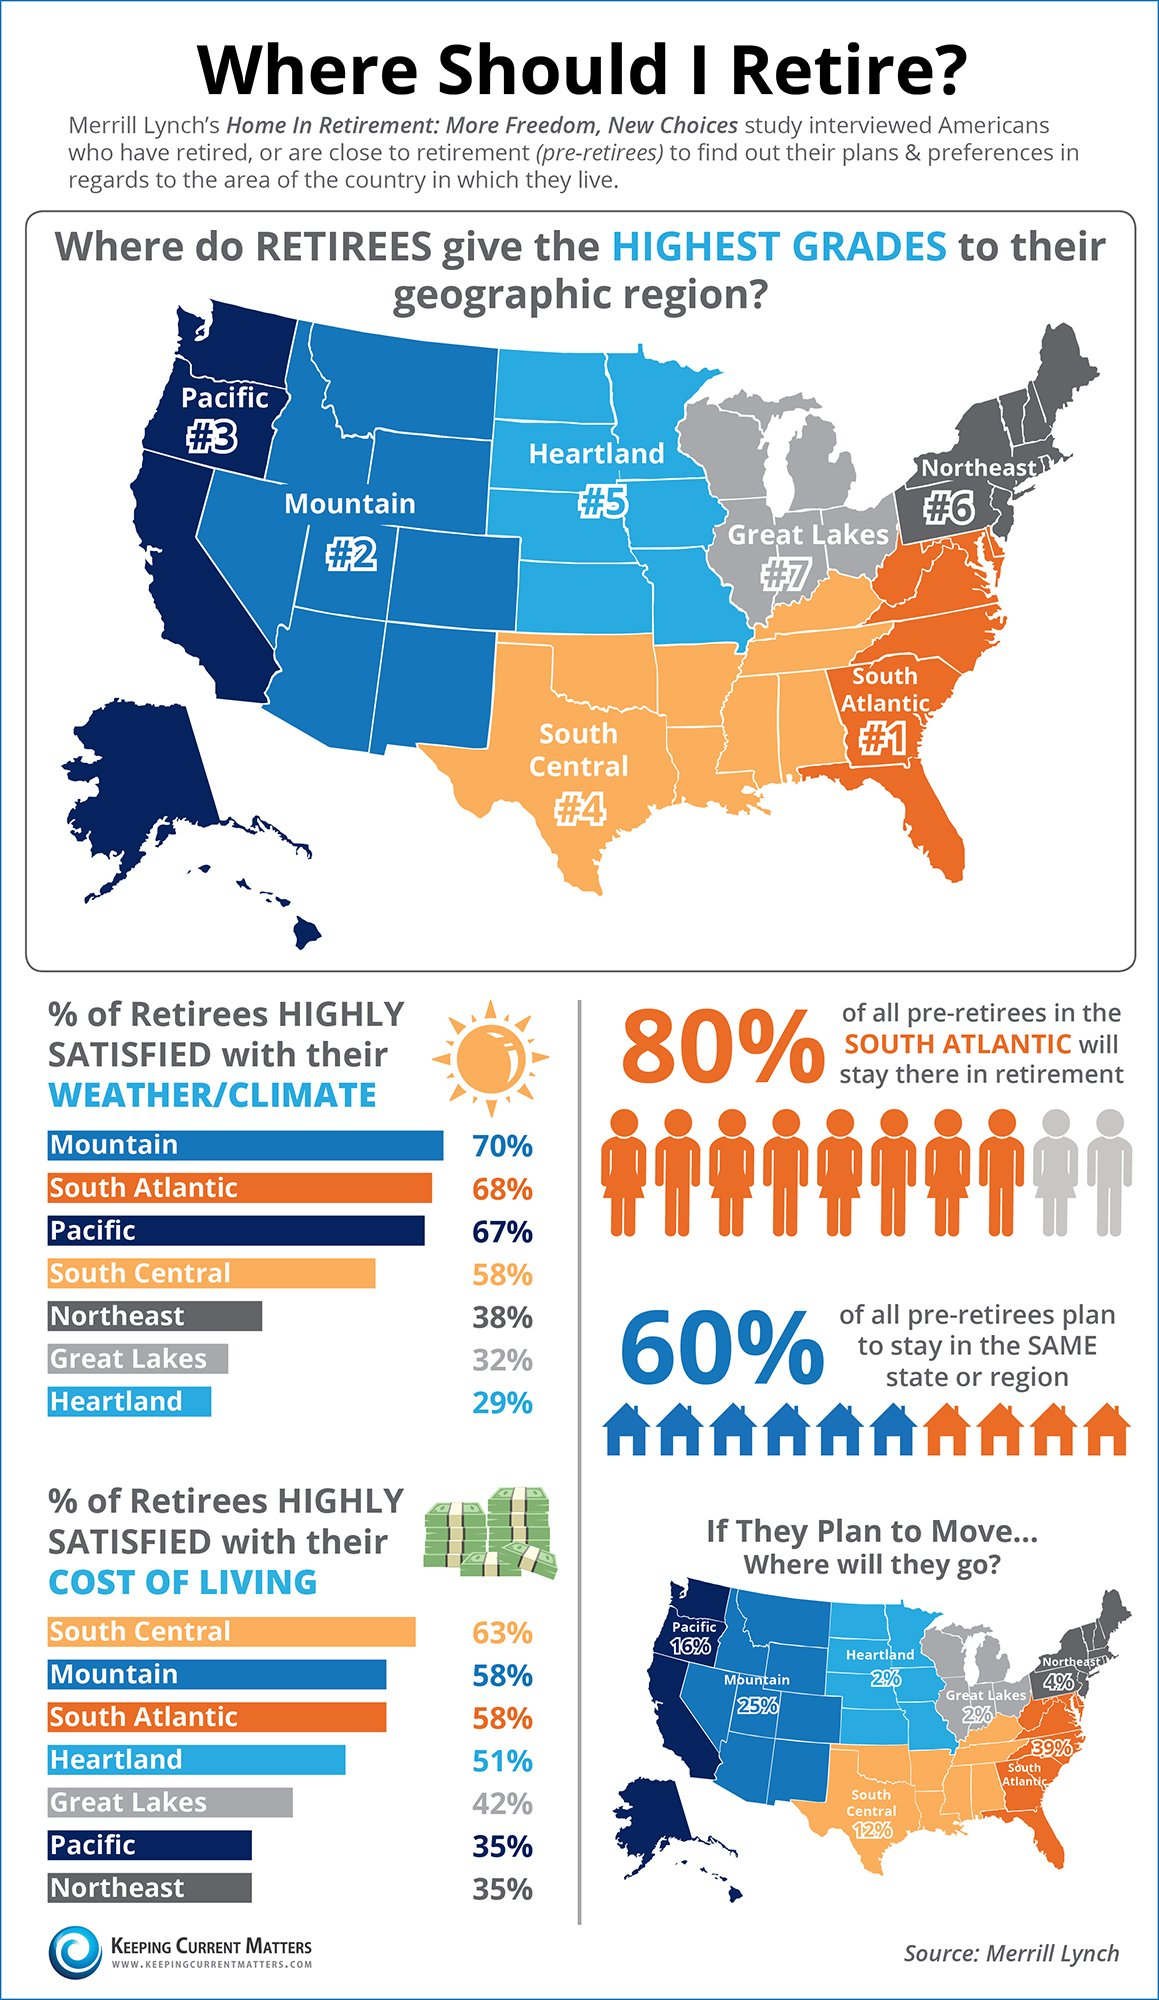 Where Should I Retire [INFOGRAPHIC] | Keeping Current Matters